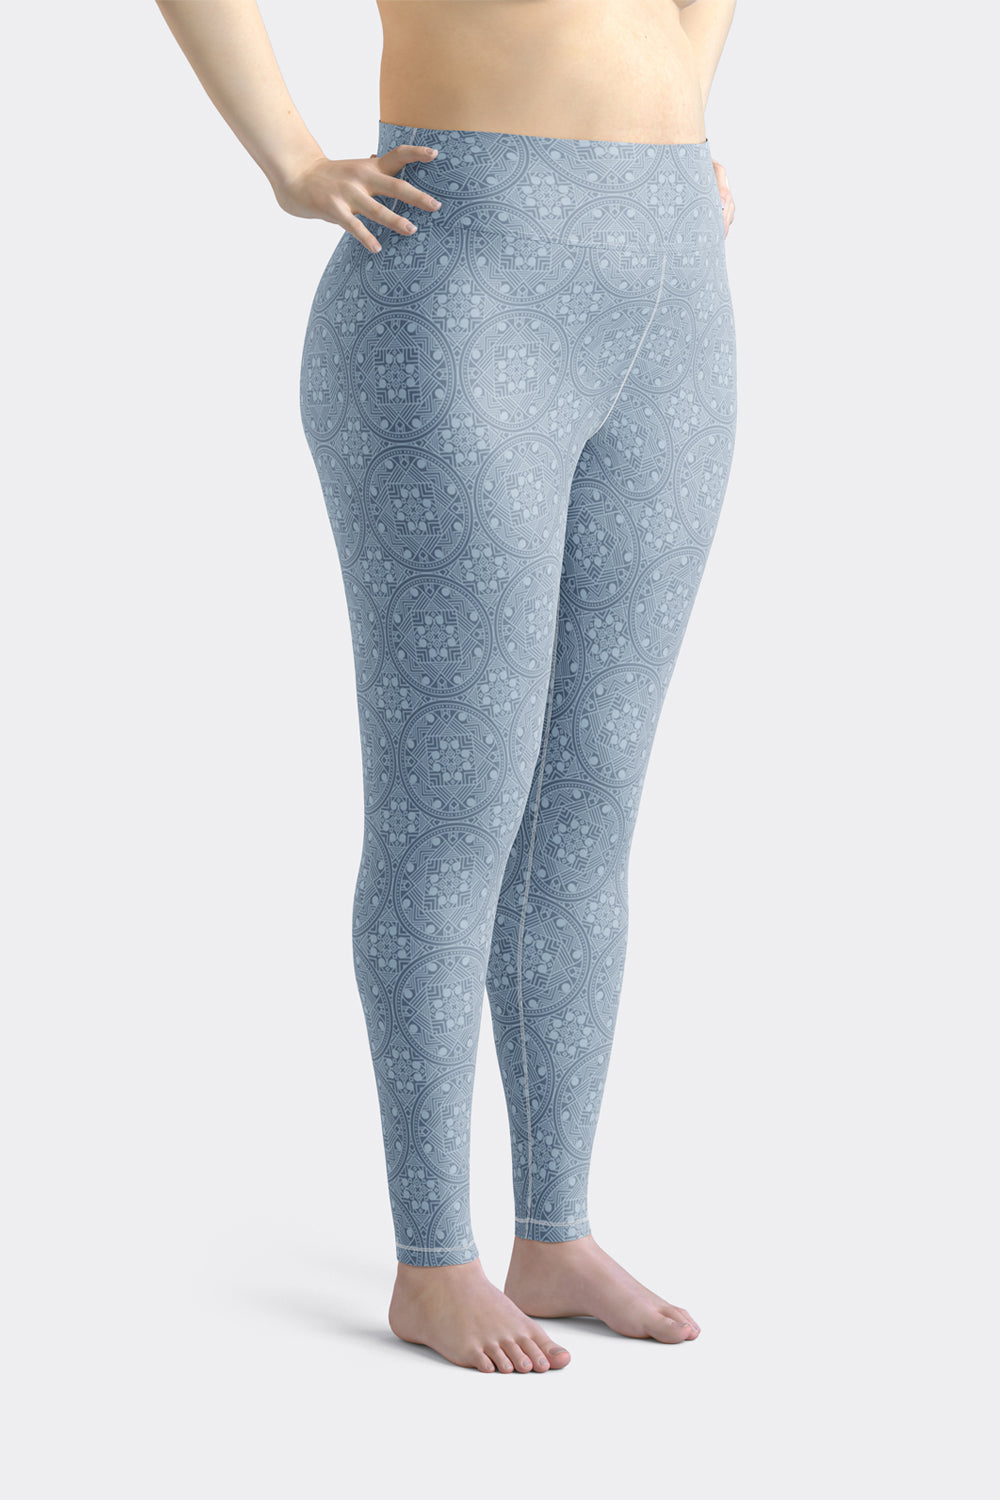 dreamin-icy-mandala-geometric-winter-plus-size-leggings-shop